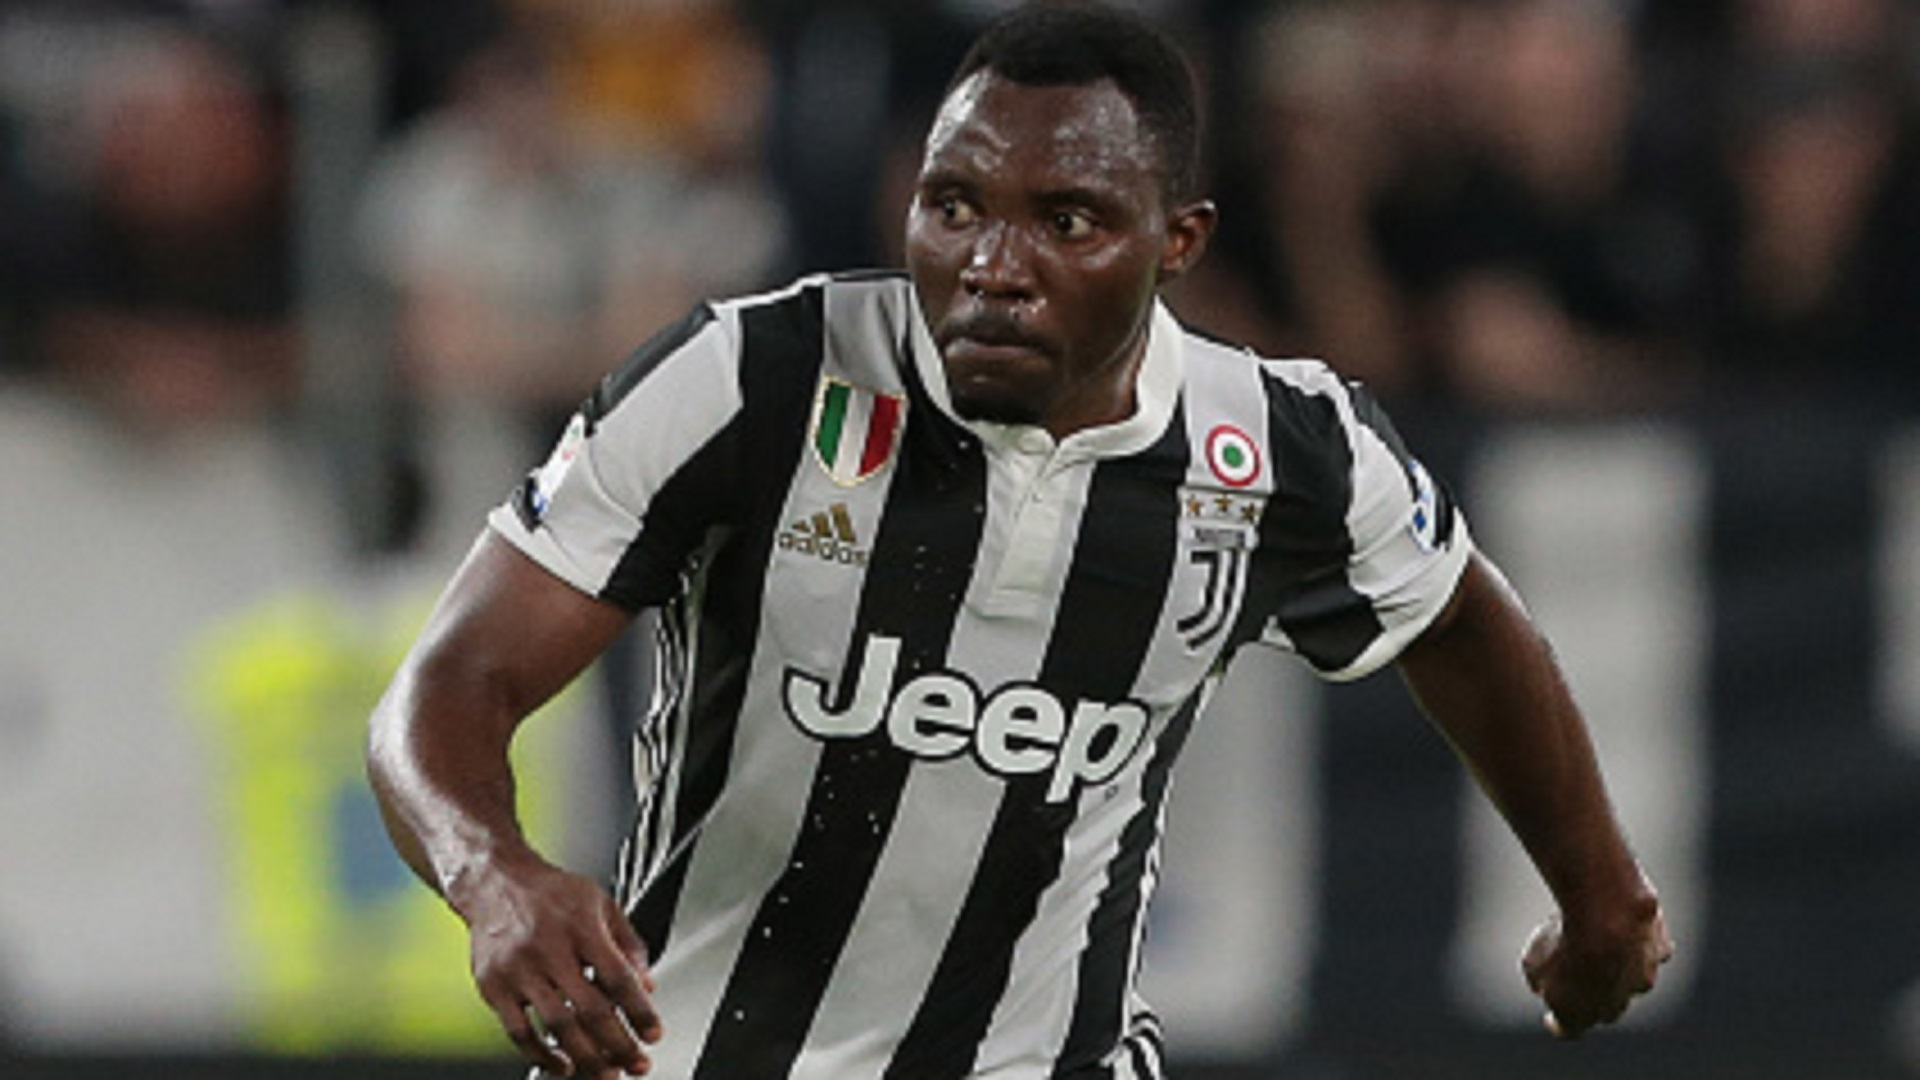 Kwadwo Asamoah of Juventus FC in action during the serie A match between Juventus and Bologna FC at Allianz Stadium on May 5, 2018 in Turin, Italy.